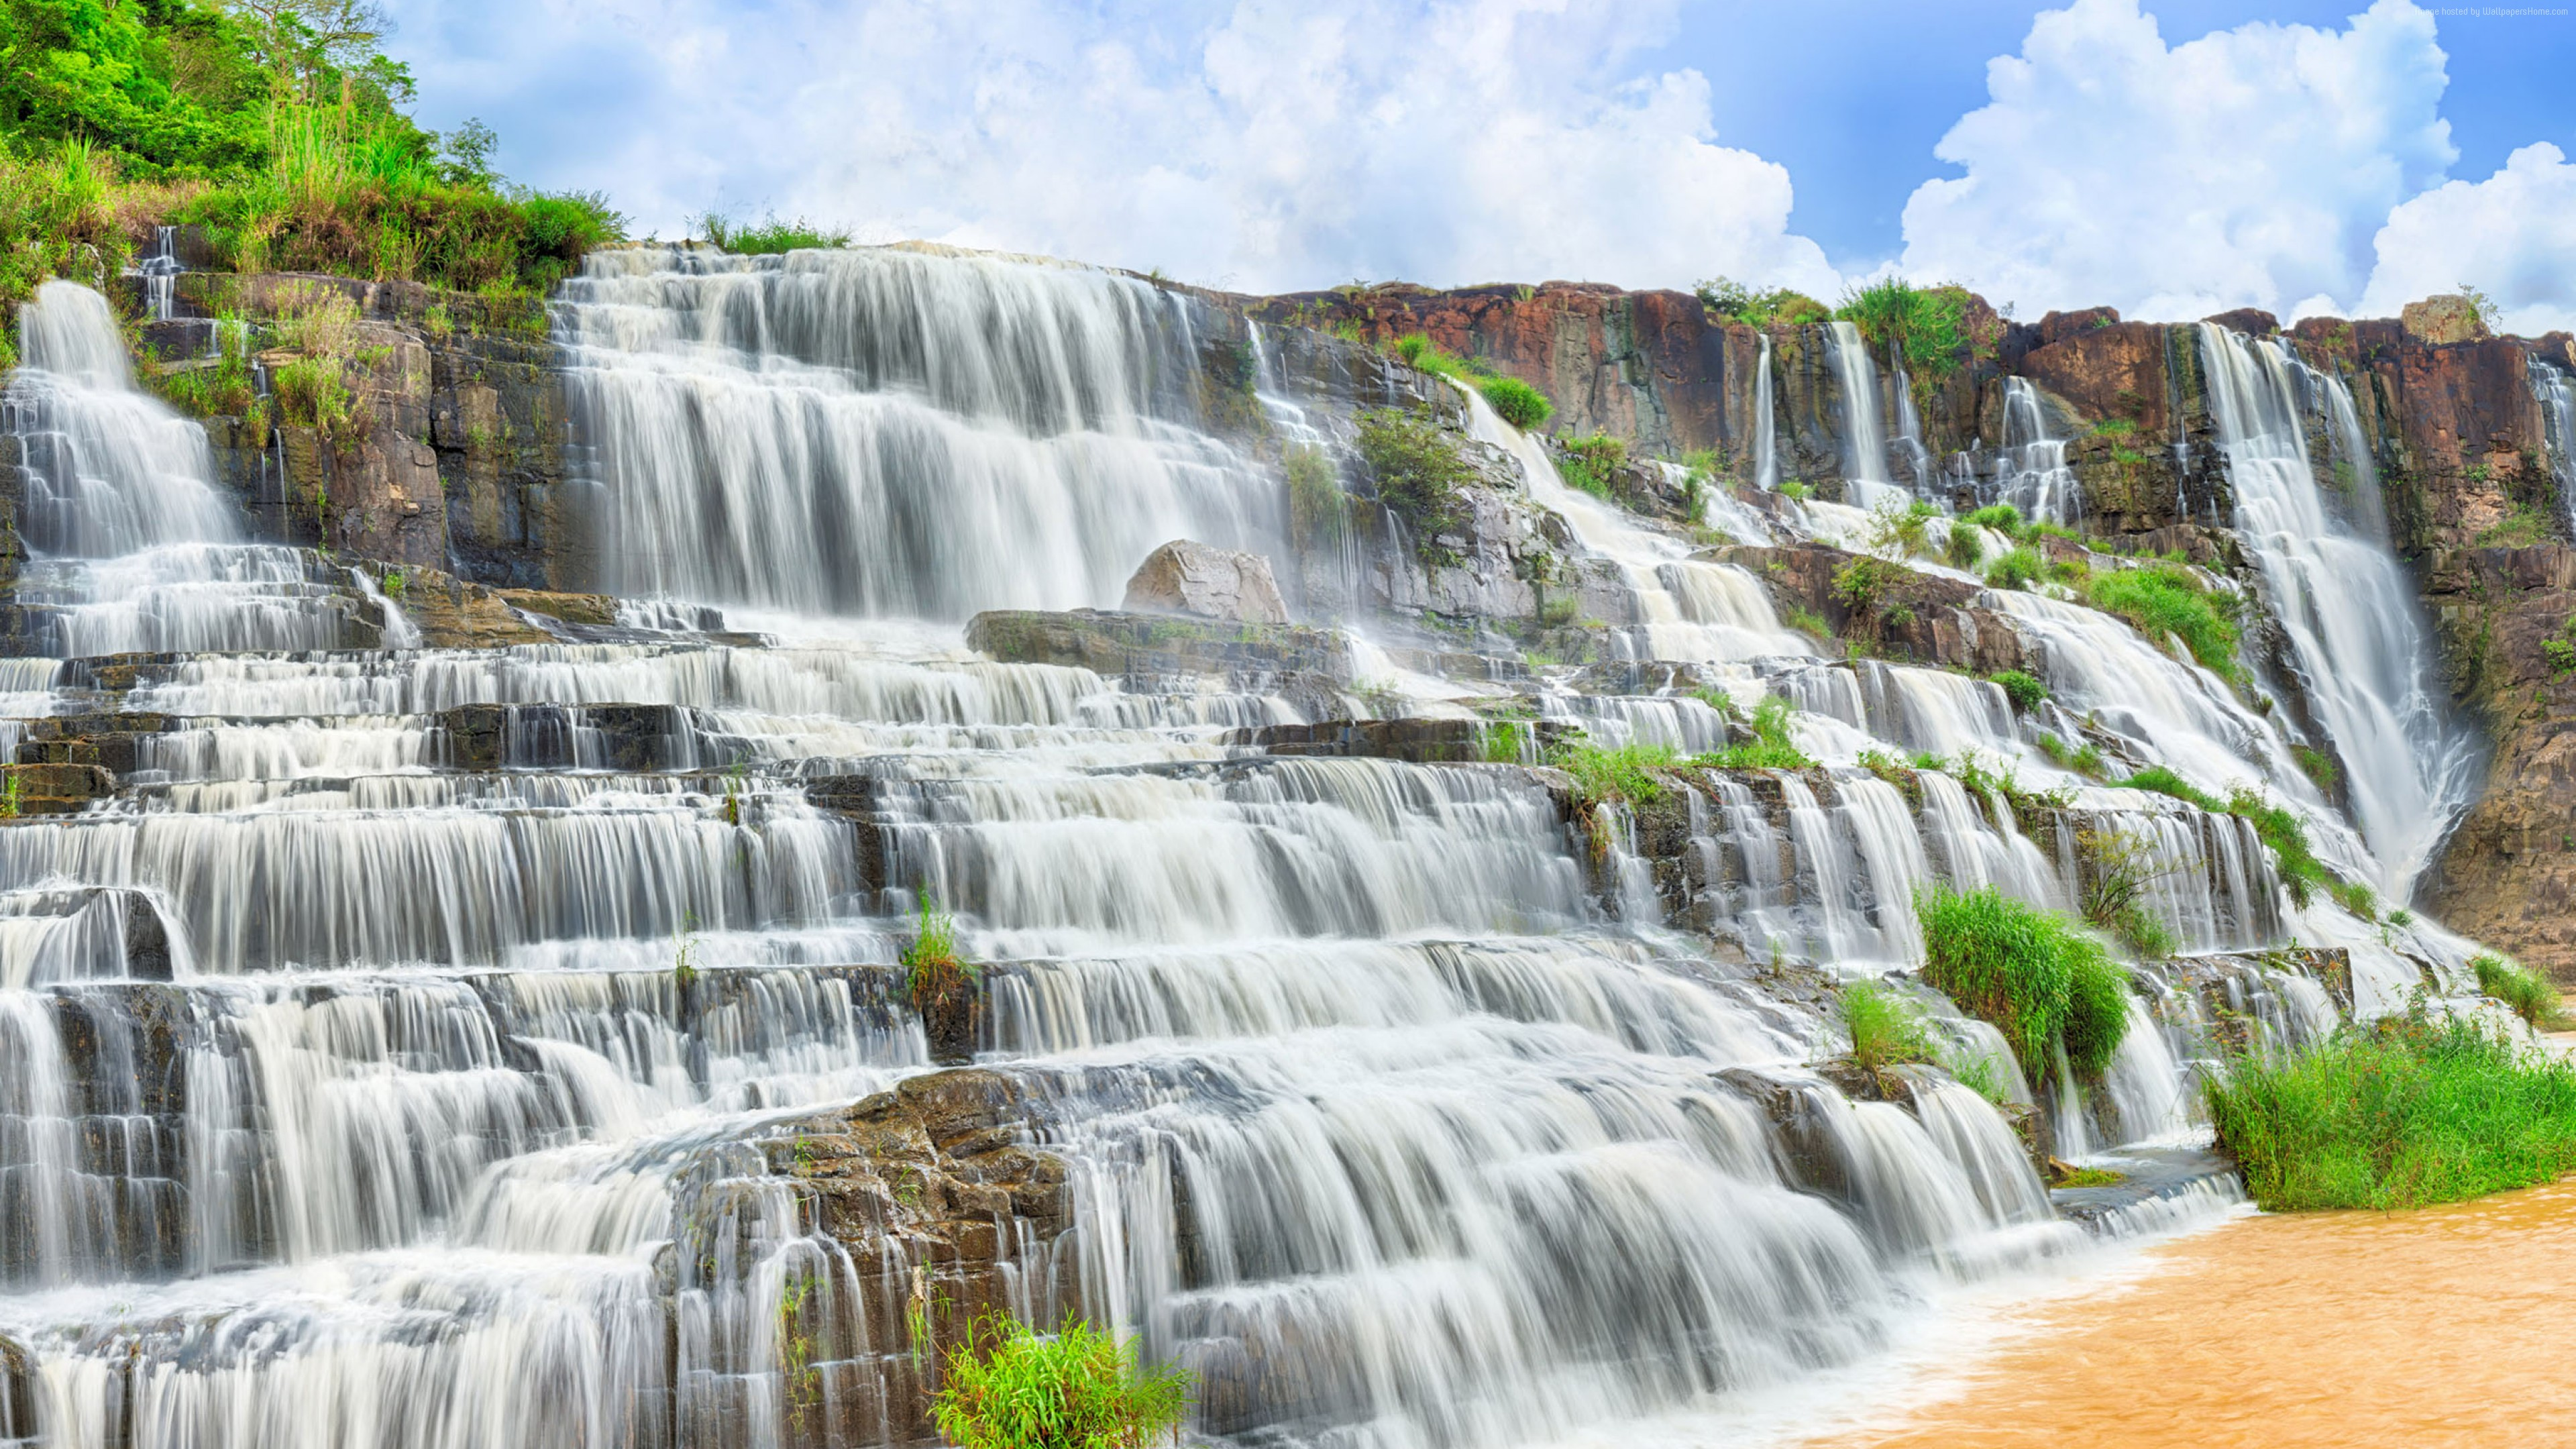 Wallpaper Pongour Waterfall, 4k, HD wallpaper, falls, travel, Pongour, waterfall, Dalat, Vietnam, mountain, river, Travel